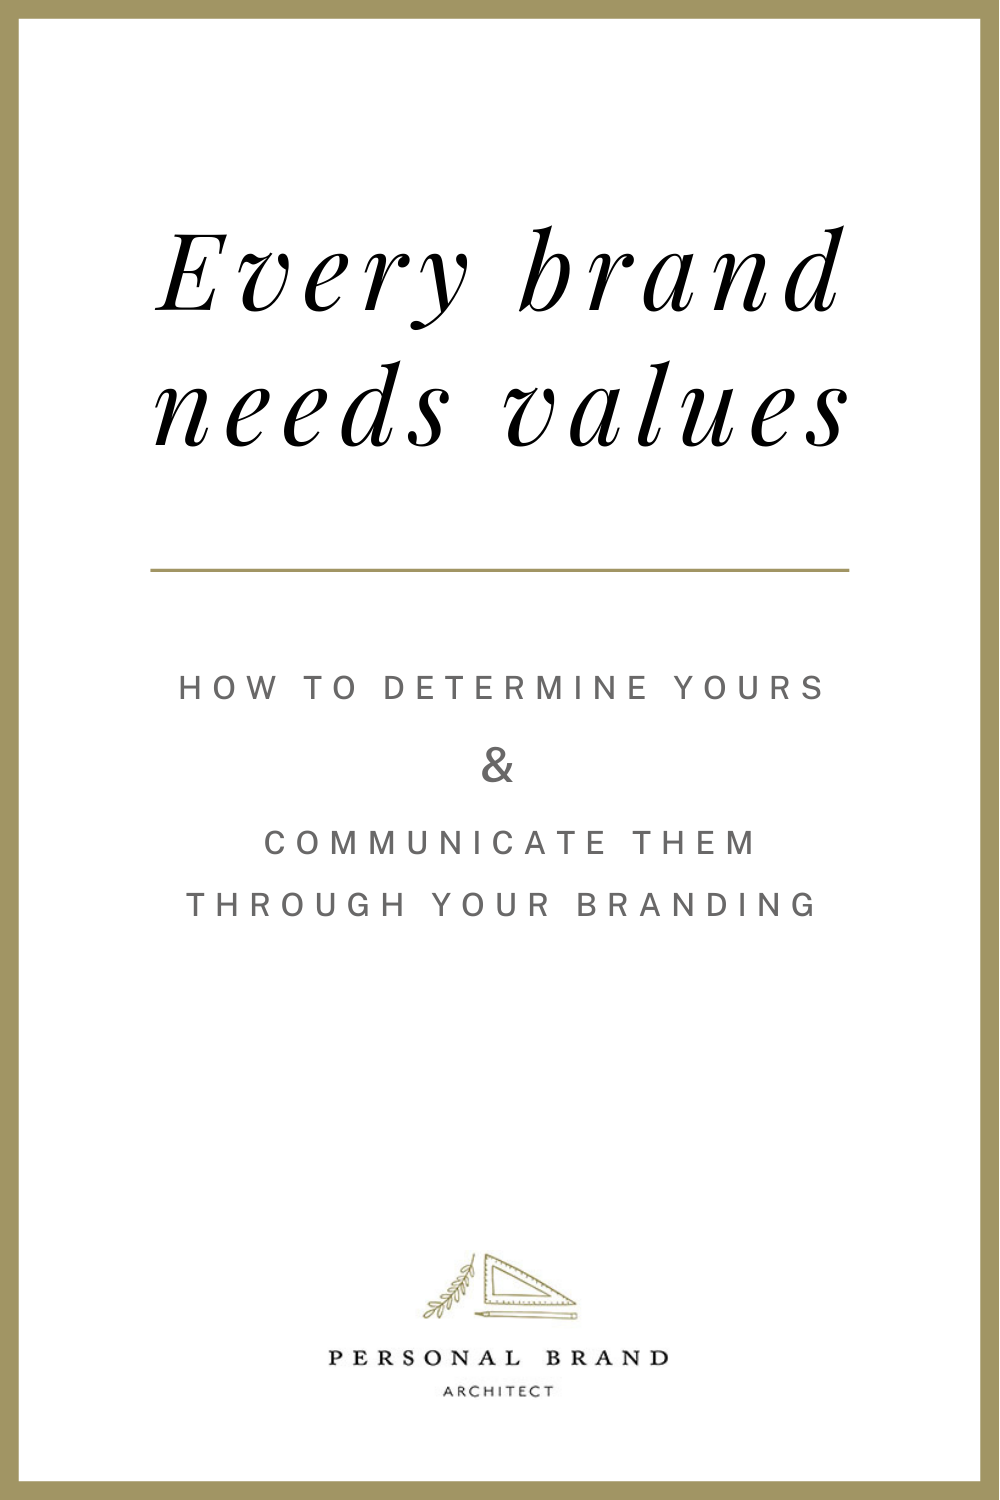 every brand needs values; how to determine yours and communicate them through branding